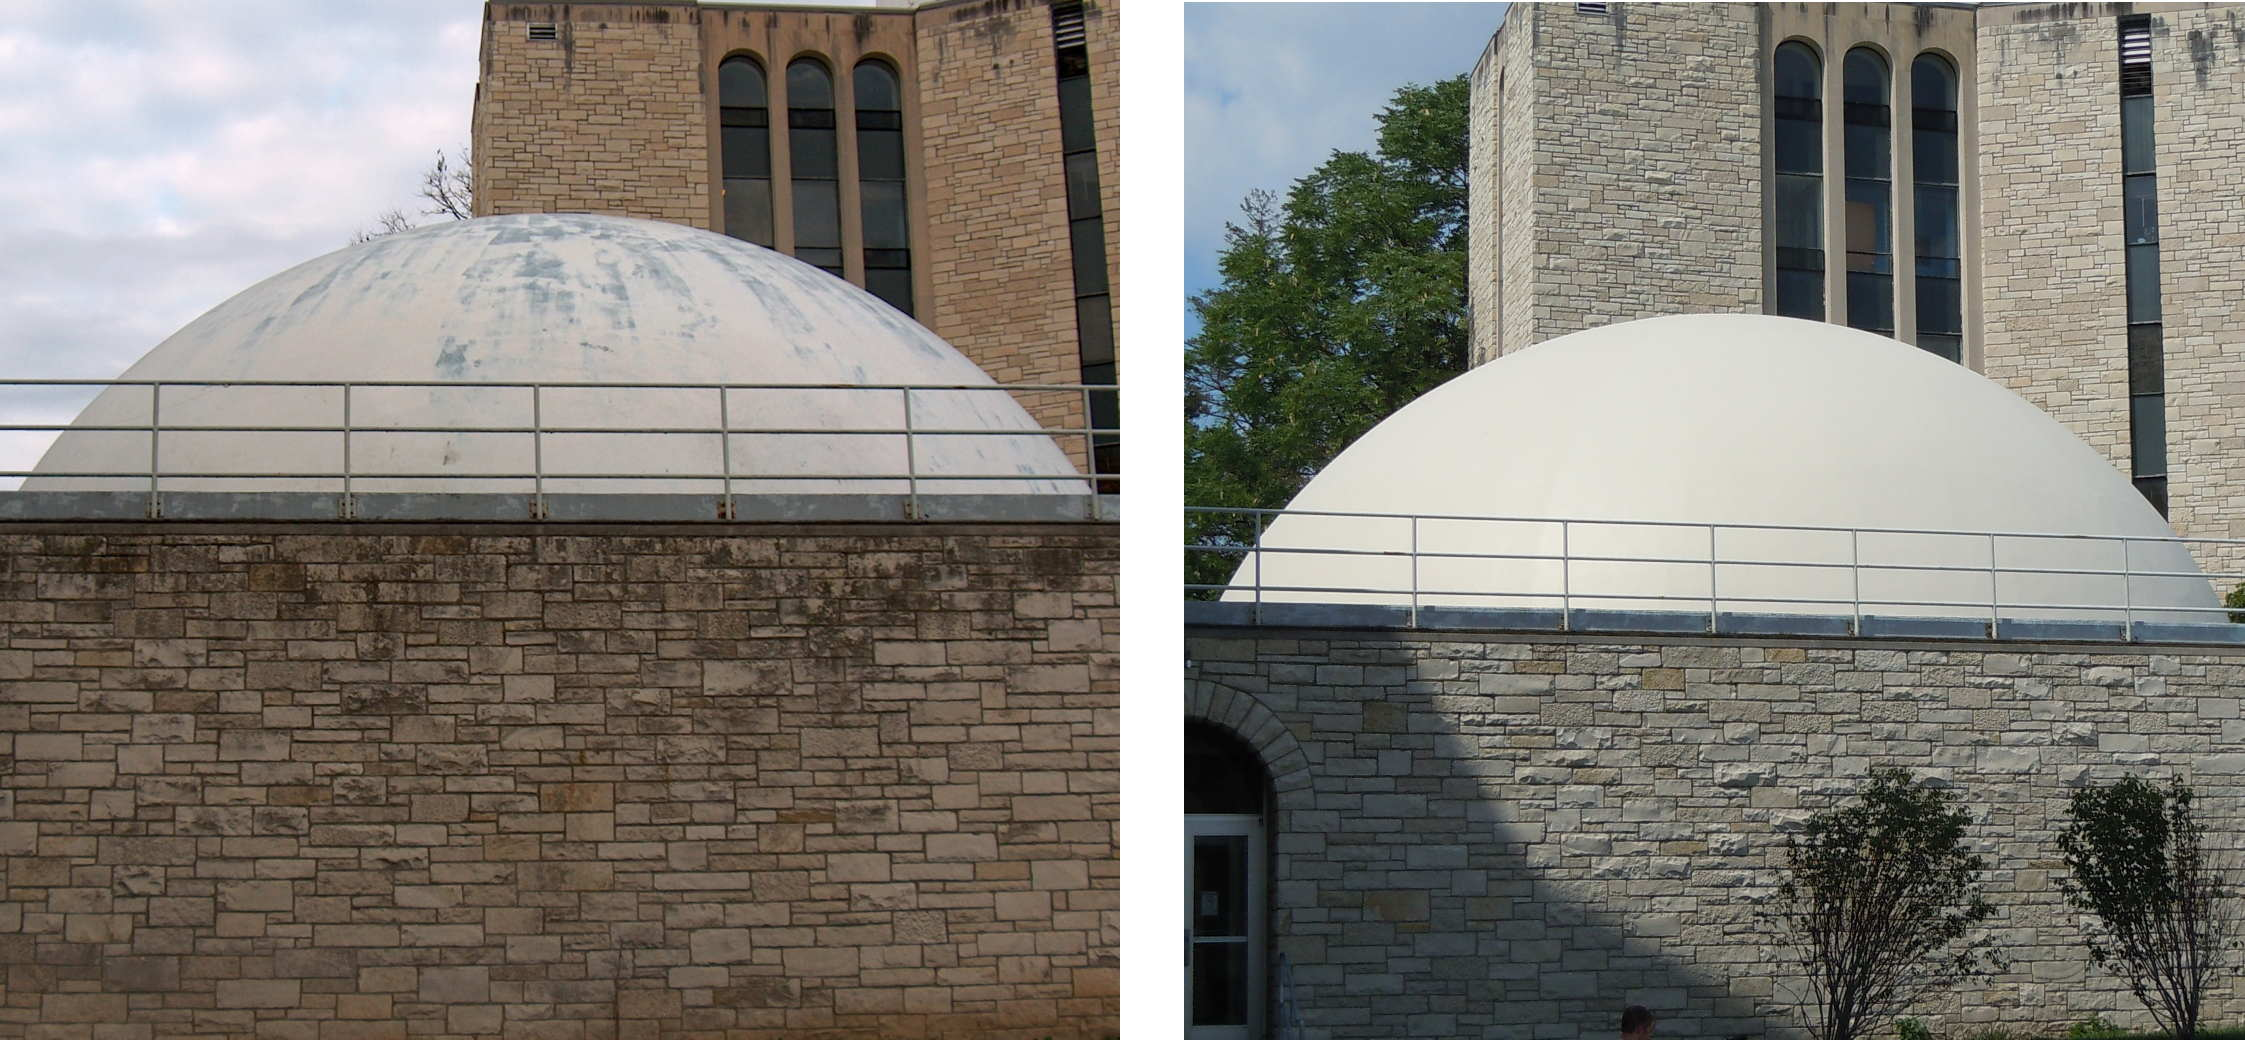 The planetarium dome before and after its repainting